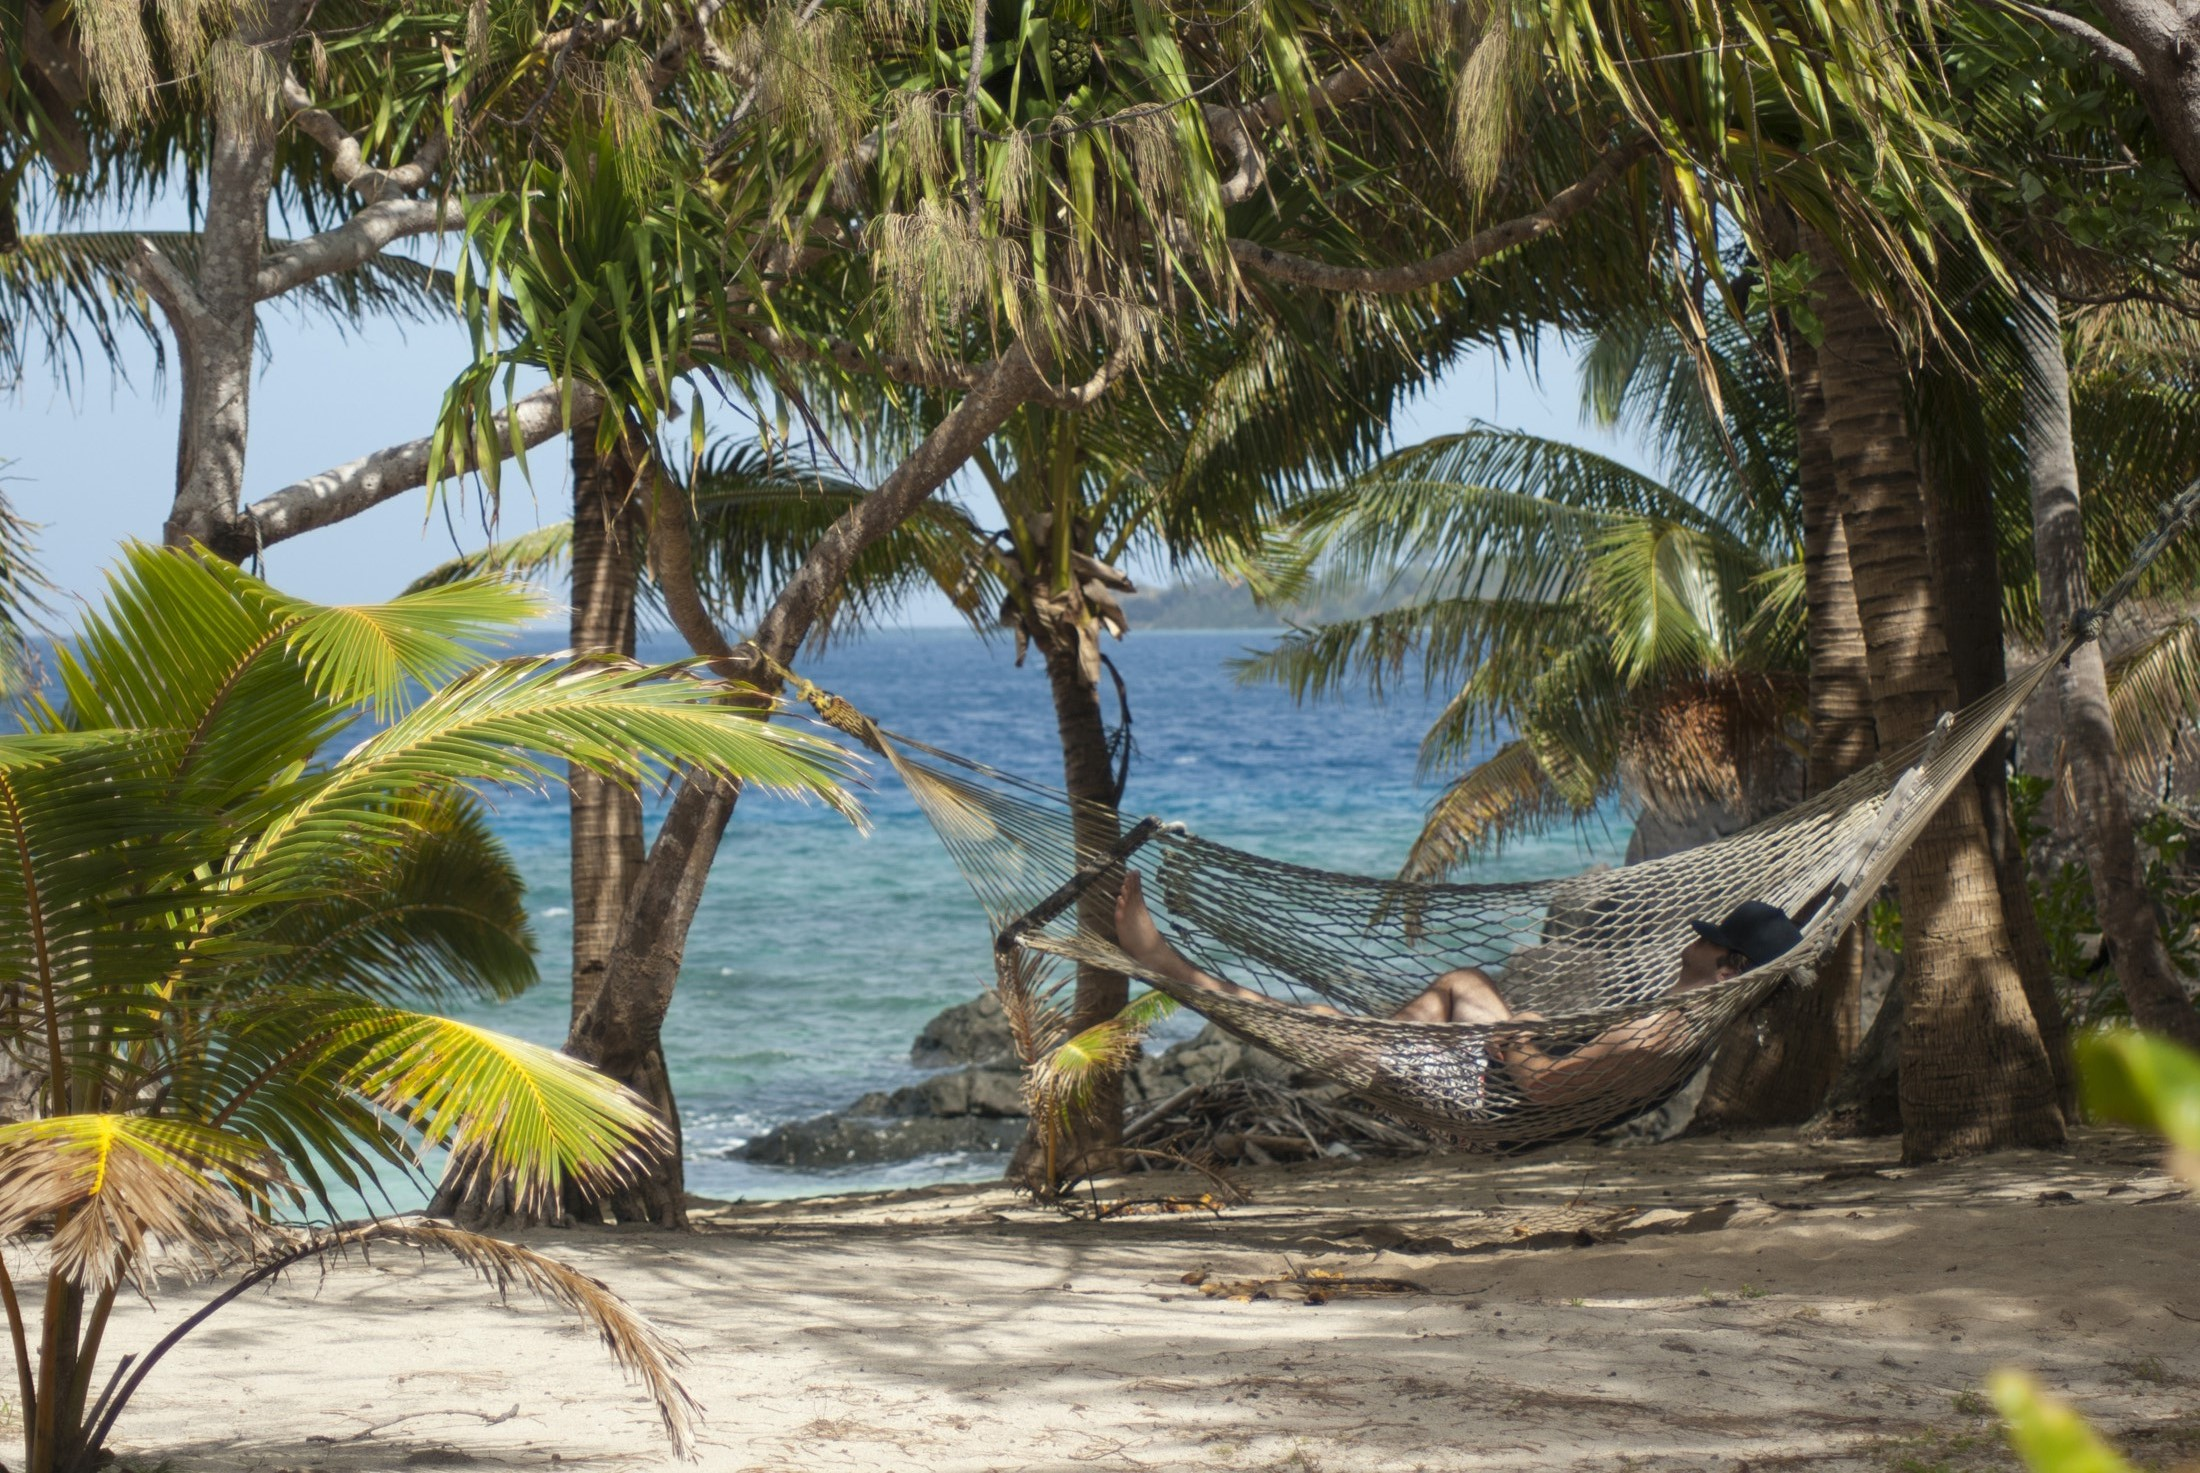 Relaxing in a hammock slung between two palm trees overlooking an idyllic tropical beach and ocean